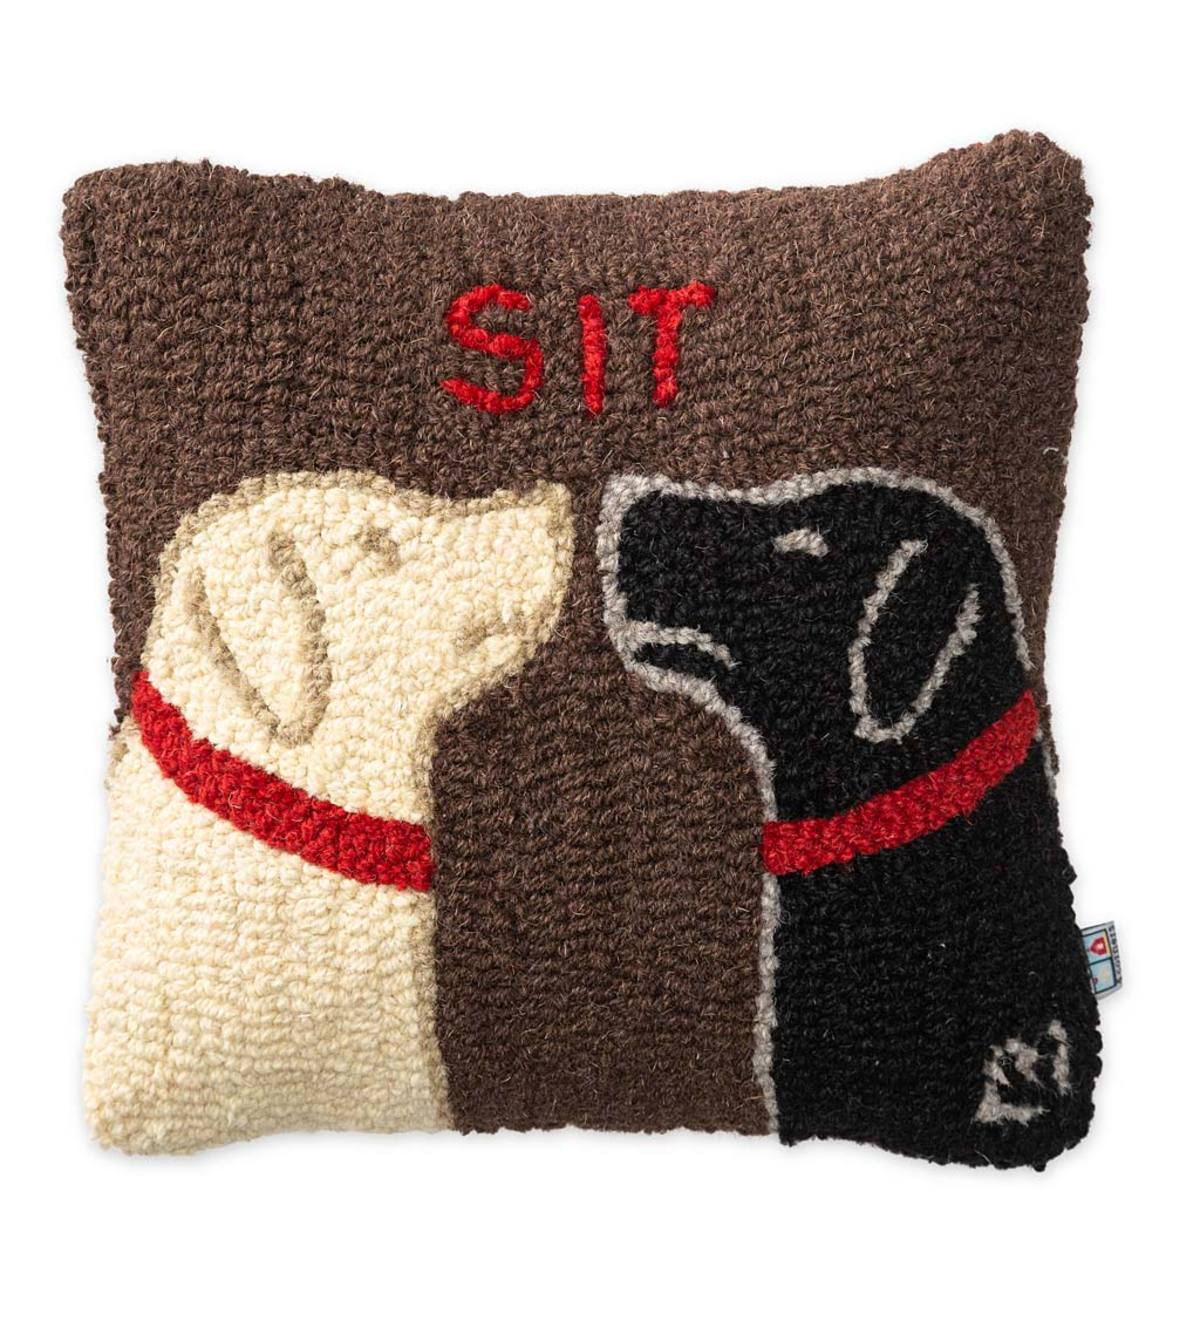 Labrador Dogs Sit Hand Hooked Wool Throw Pillow Plowhearth